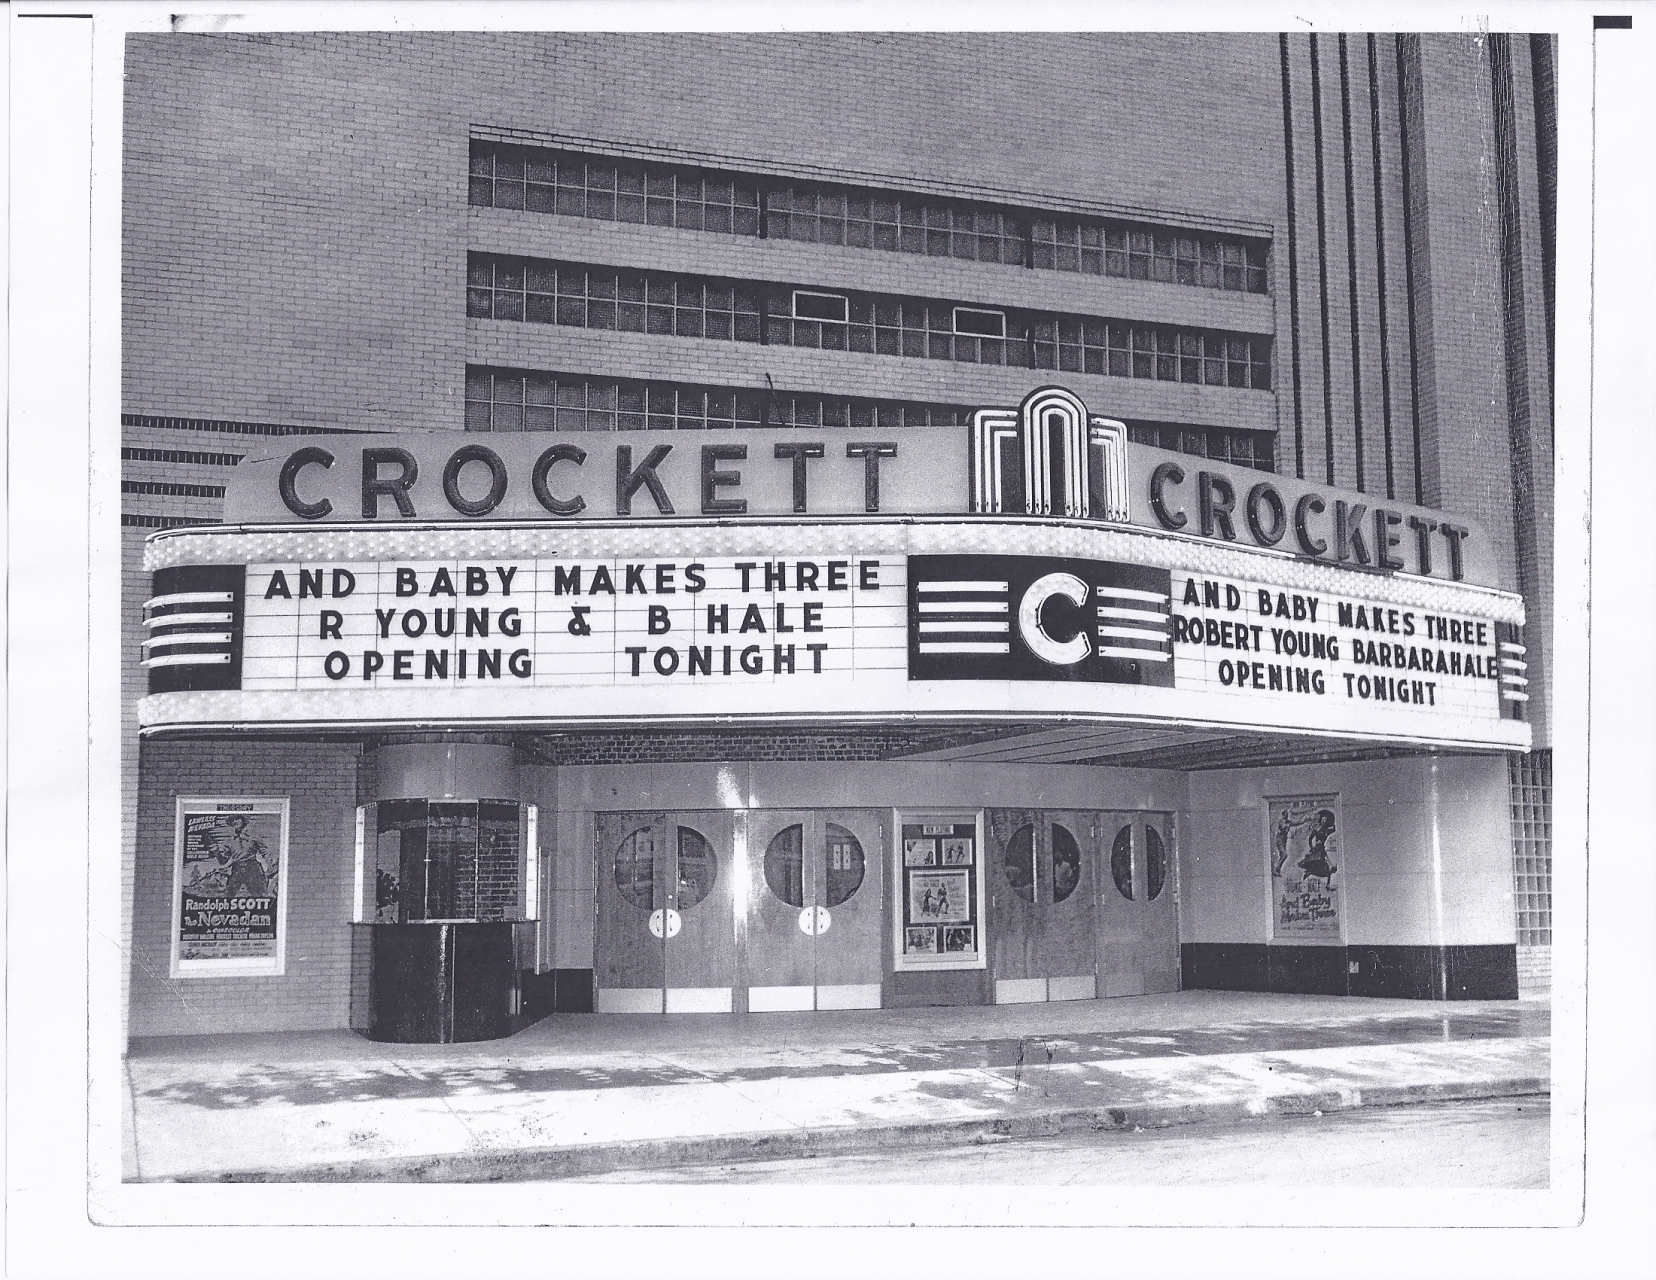 The Crockett prior to opening in 1950